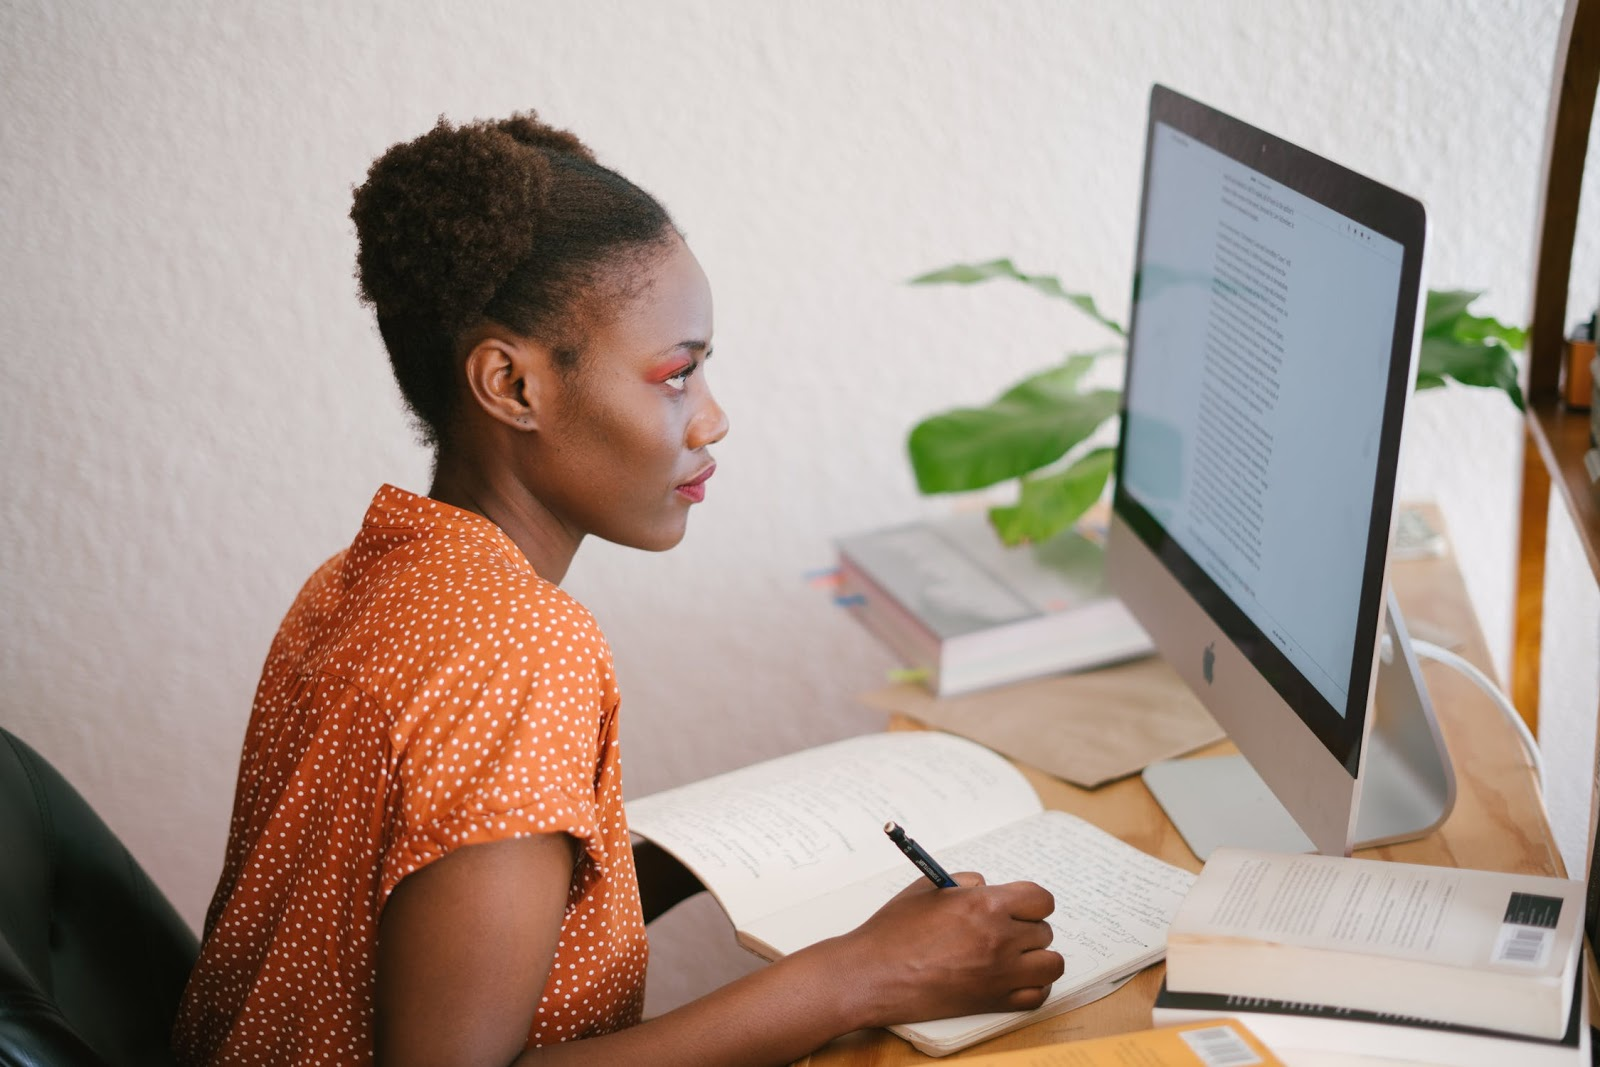 A woman sitting at a desk and looking at a computer monitor while she writes in a notebook.